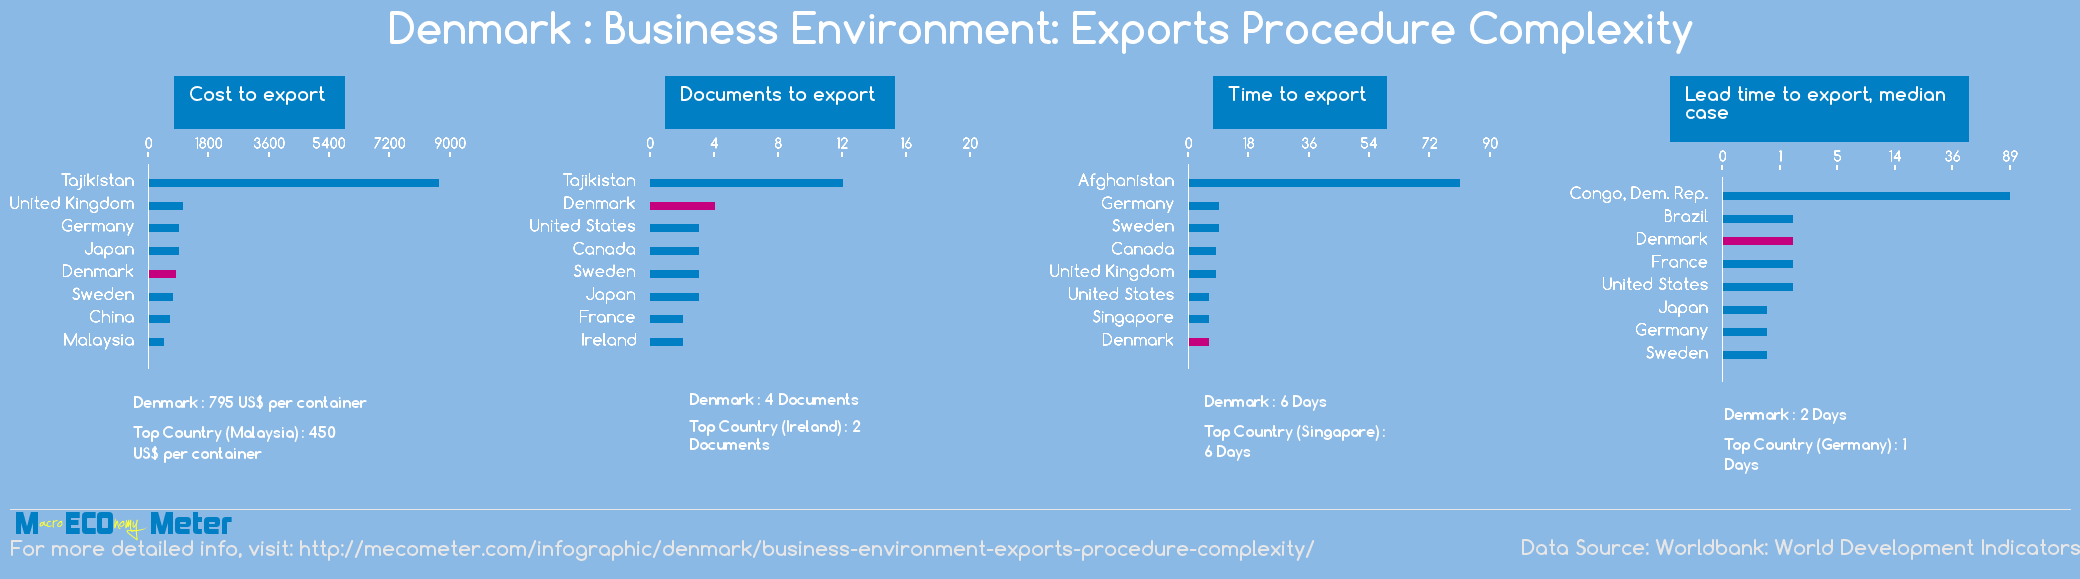 Denmark : Business Environment: Exports Procedure Complexity